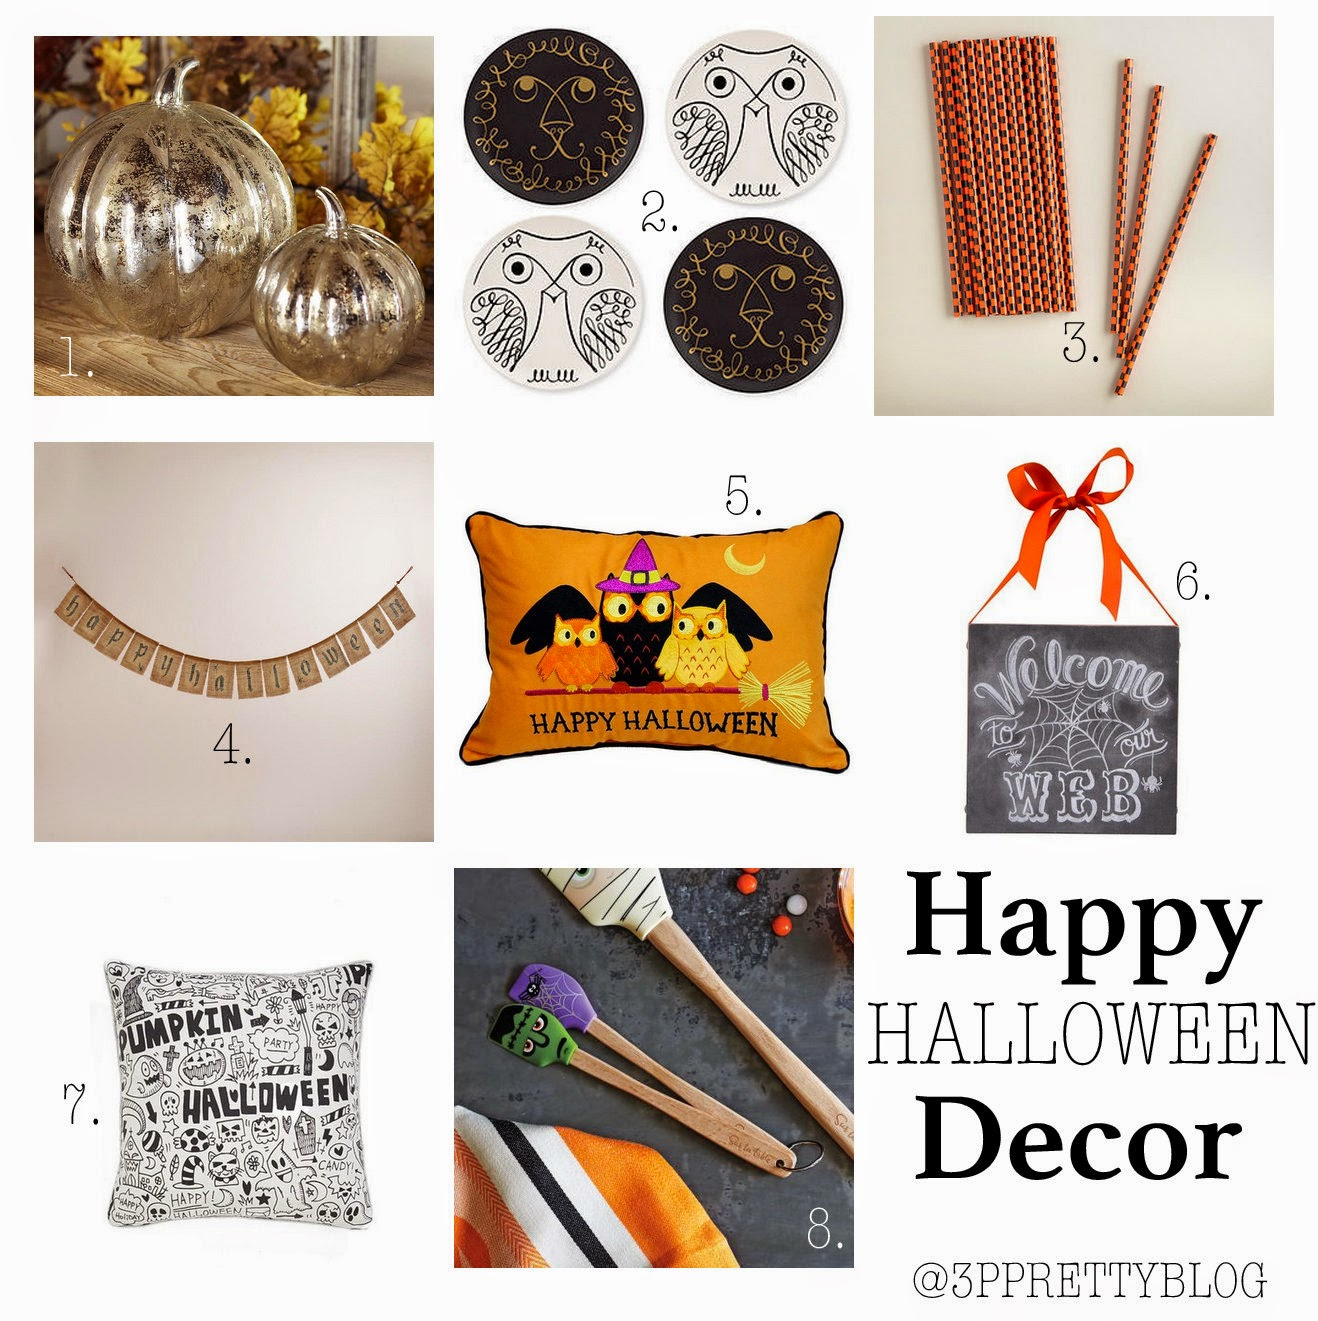 Particularly Practically Pretty: Happy Halloween Decor - Happy Halloween Decorations